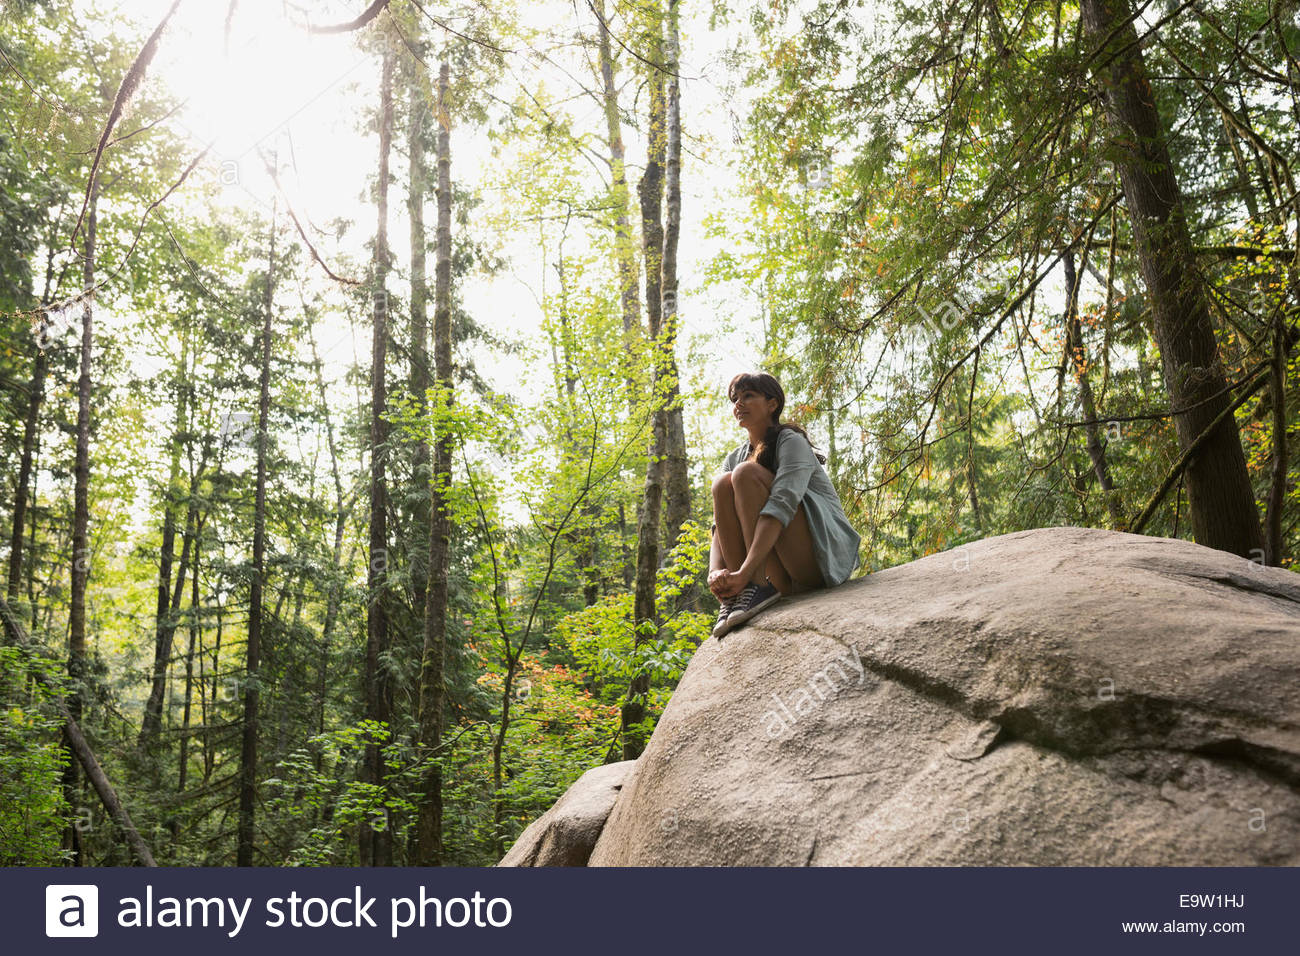 Young woman sitting on rock in sunny woods Photo Stock